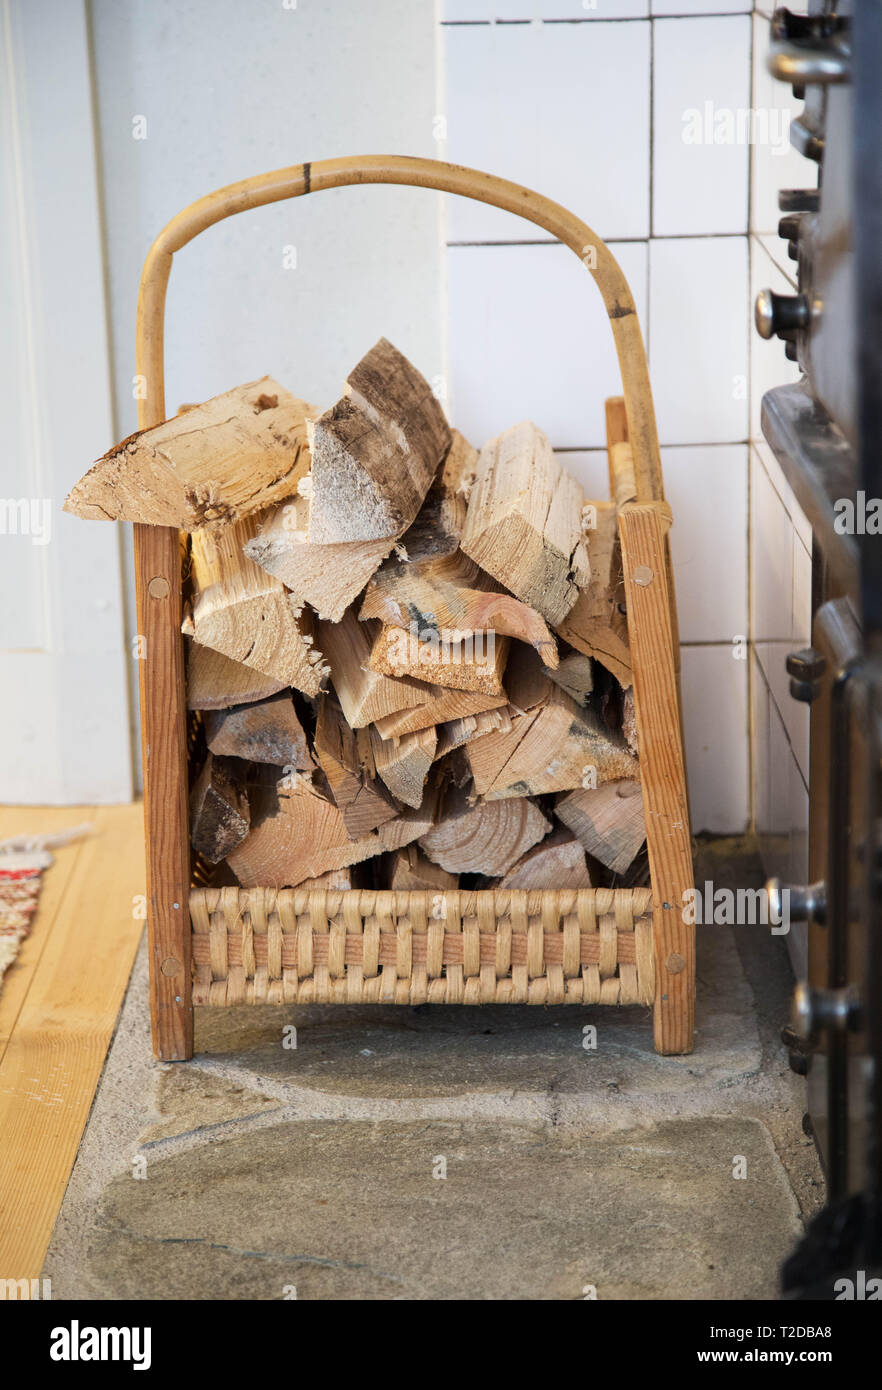 Firewood at a wood stove in kitchen. - Stock Image